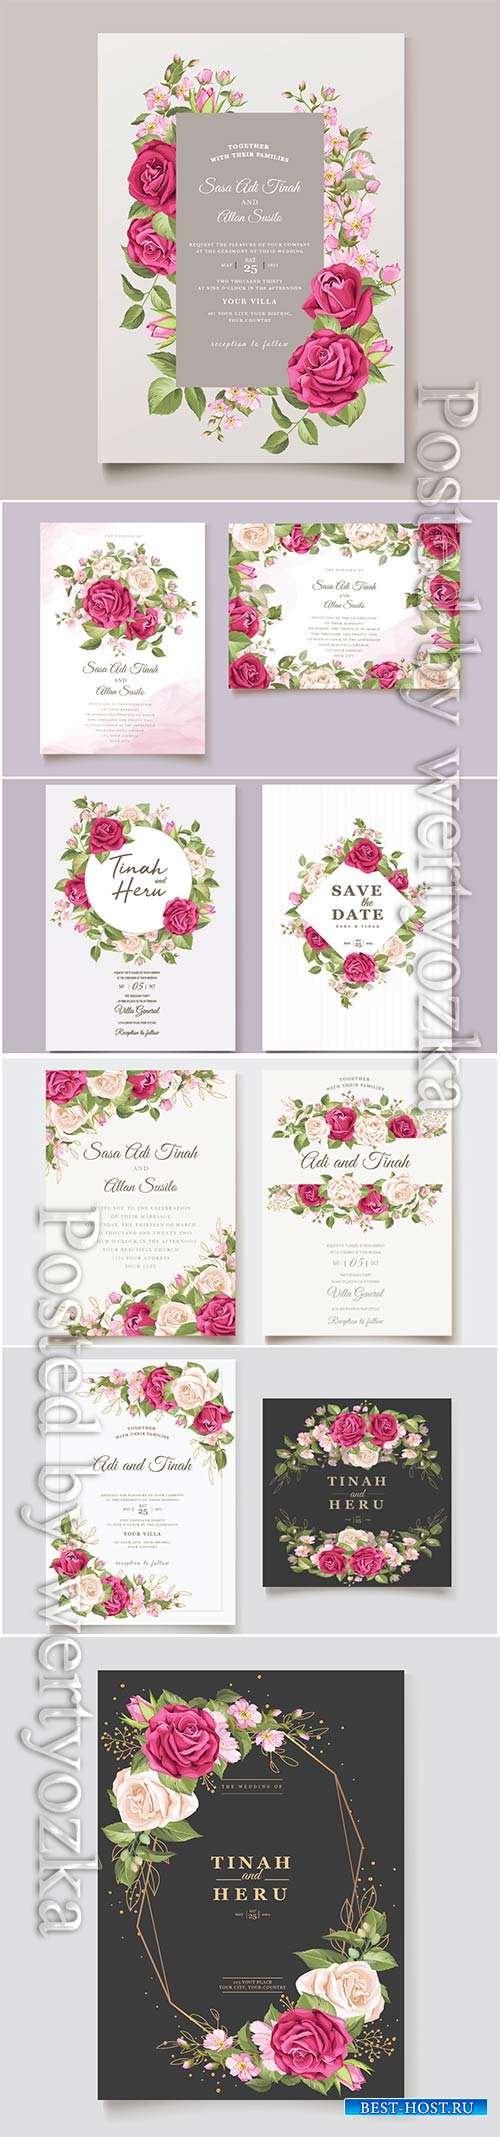 Wedding invitation cards with flowers in vector